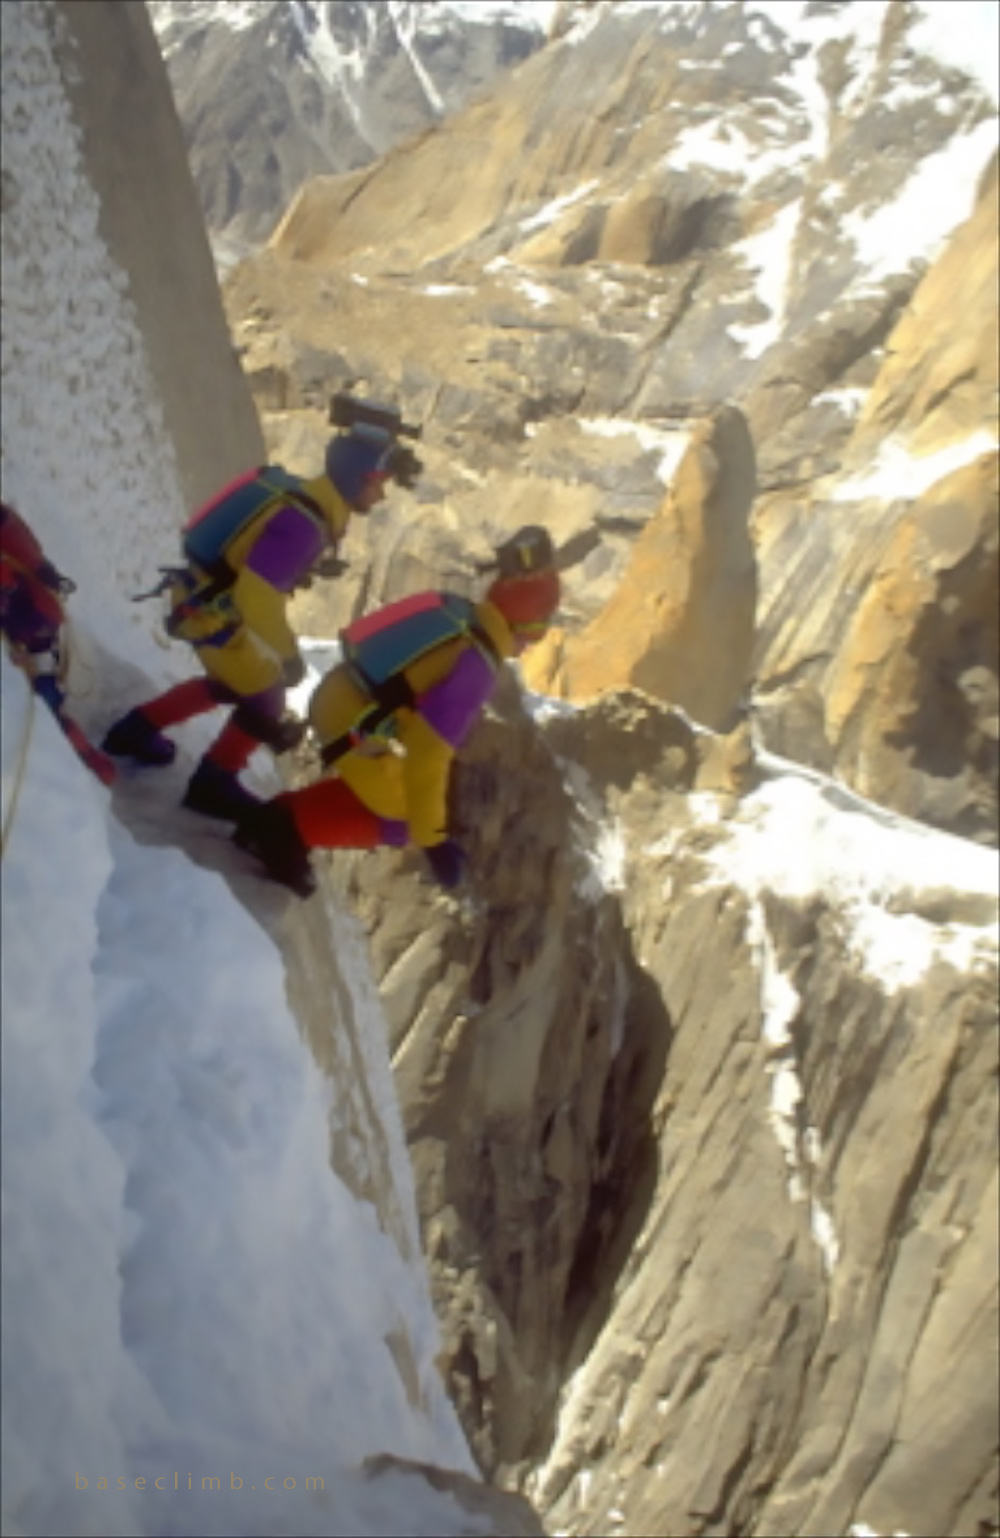 Baseclimb - jump from the Great Trango Tower in Pakistan